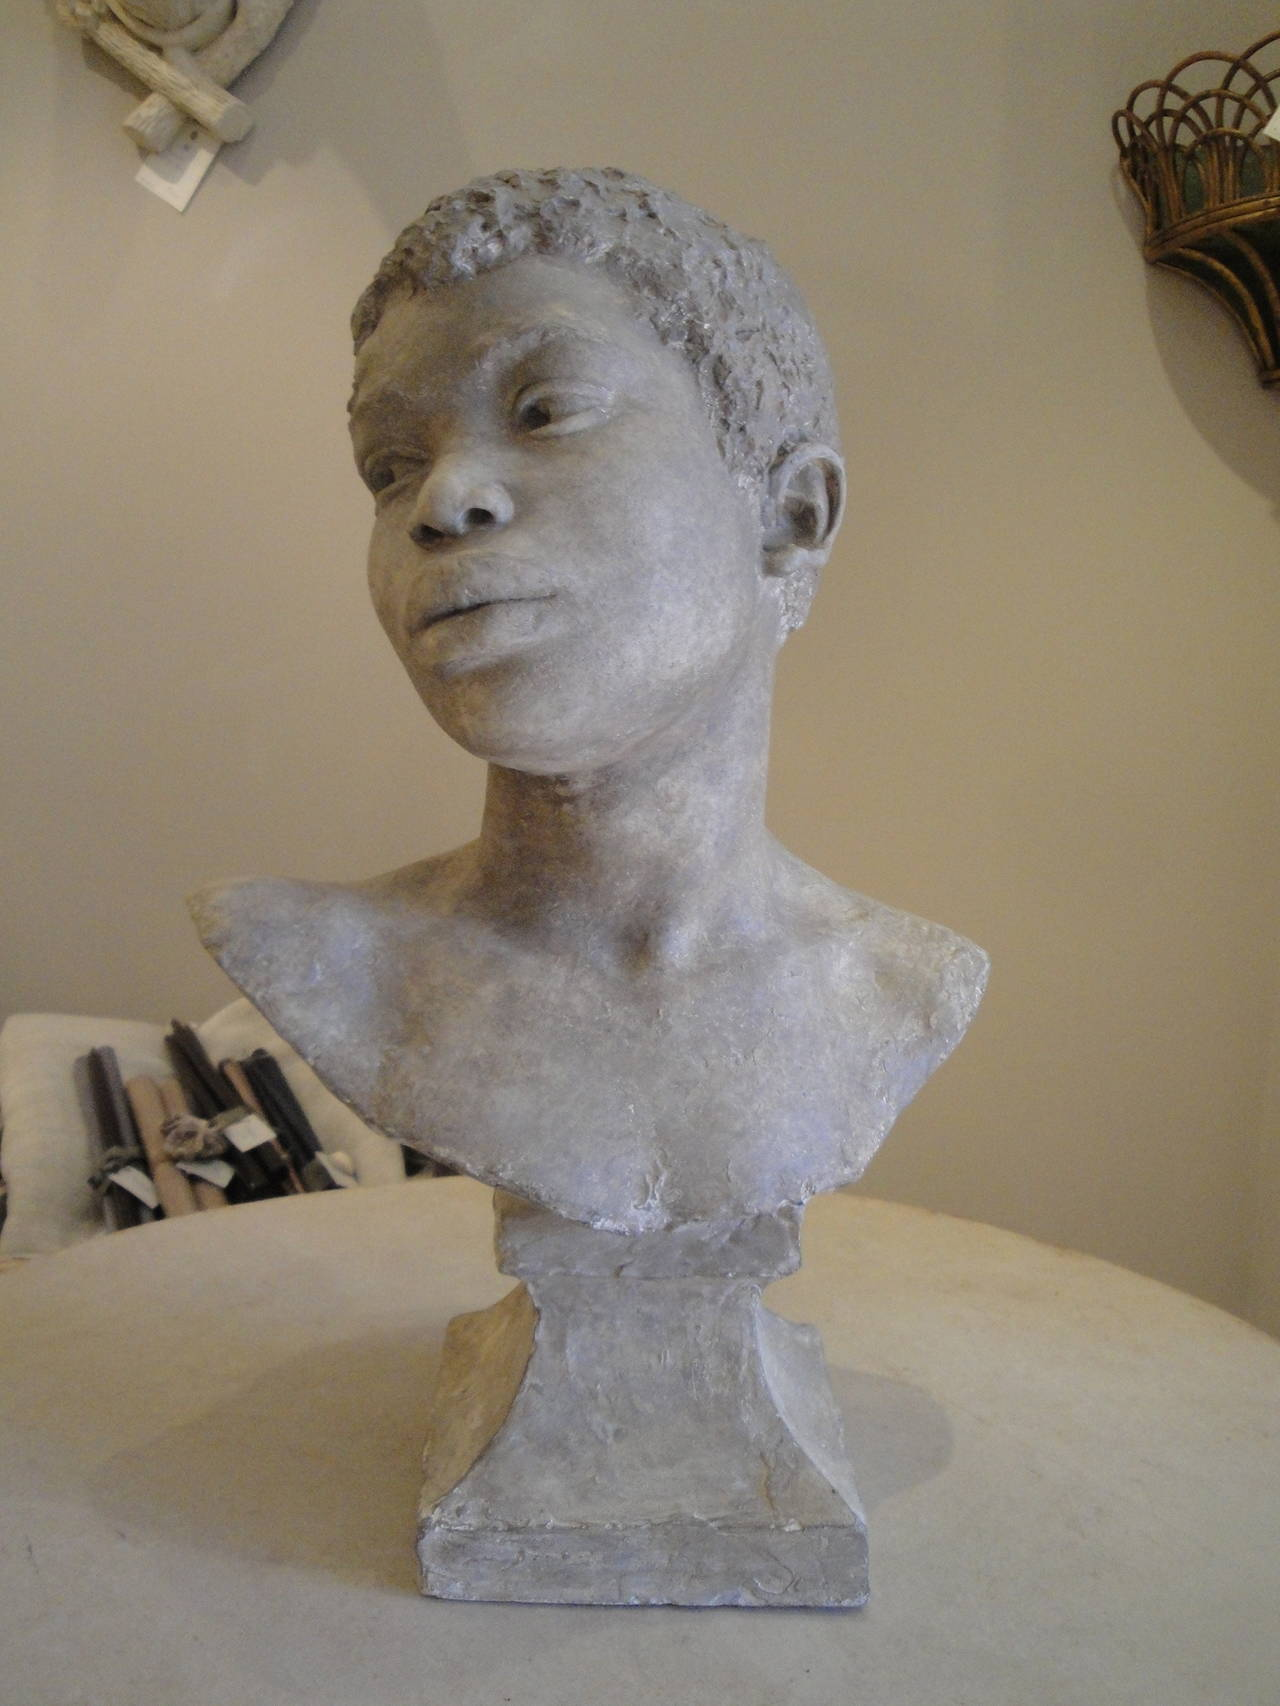 Stags Head Home Decor Bust Of A Young Boy At 1stdibs